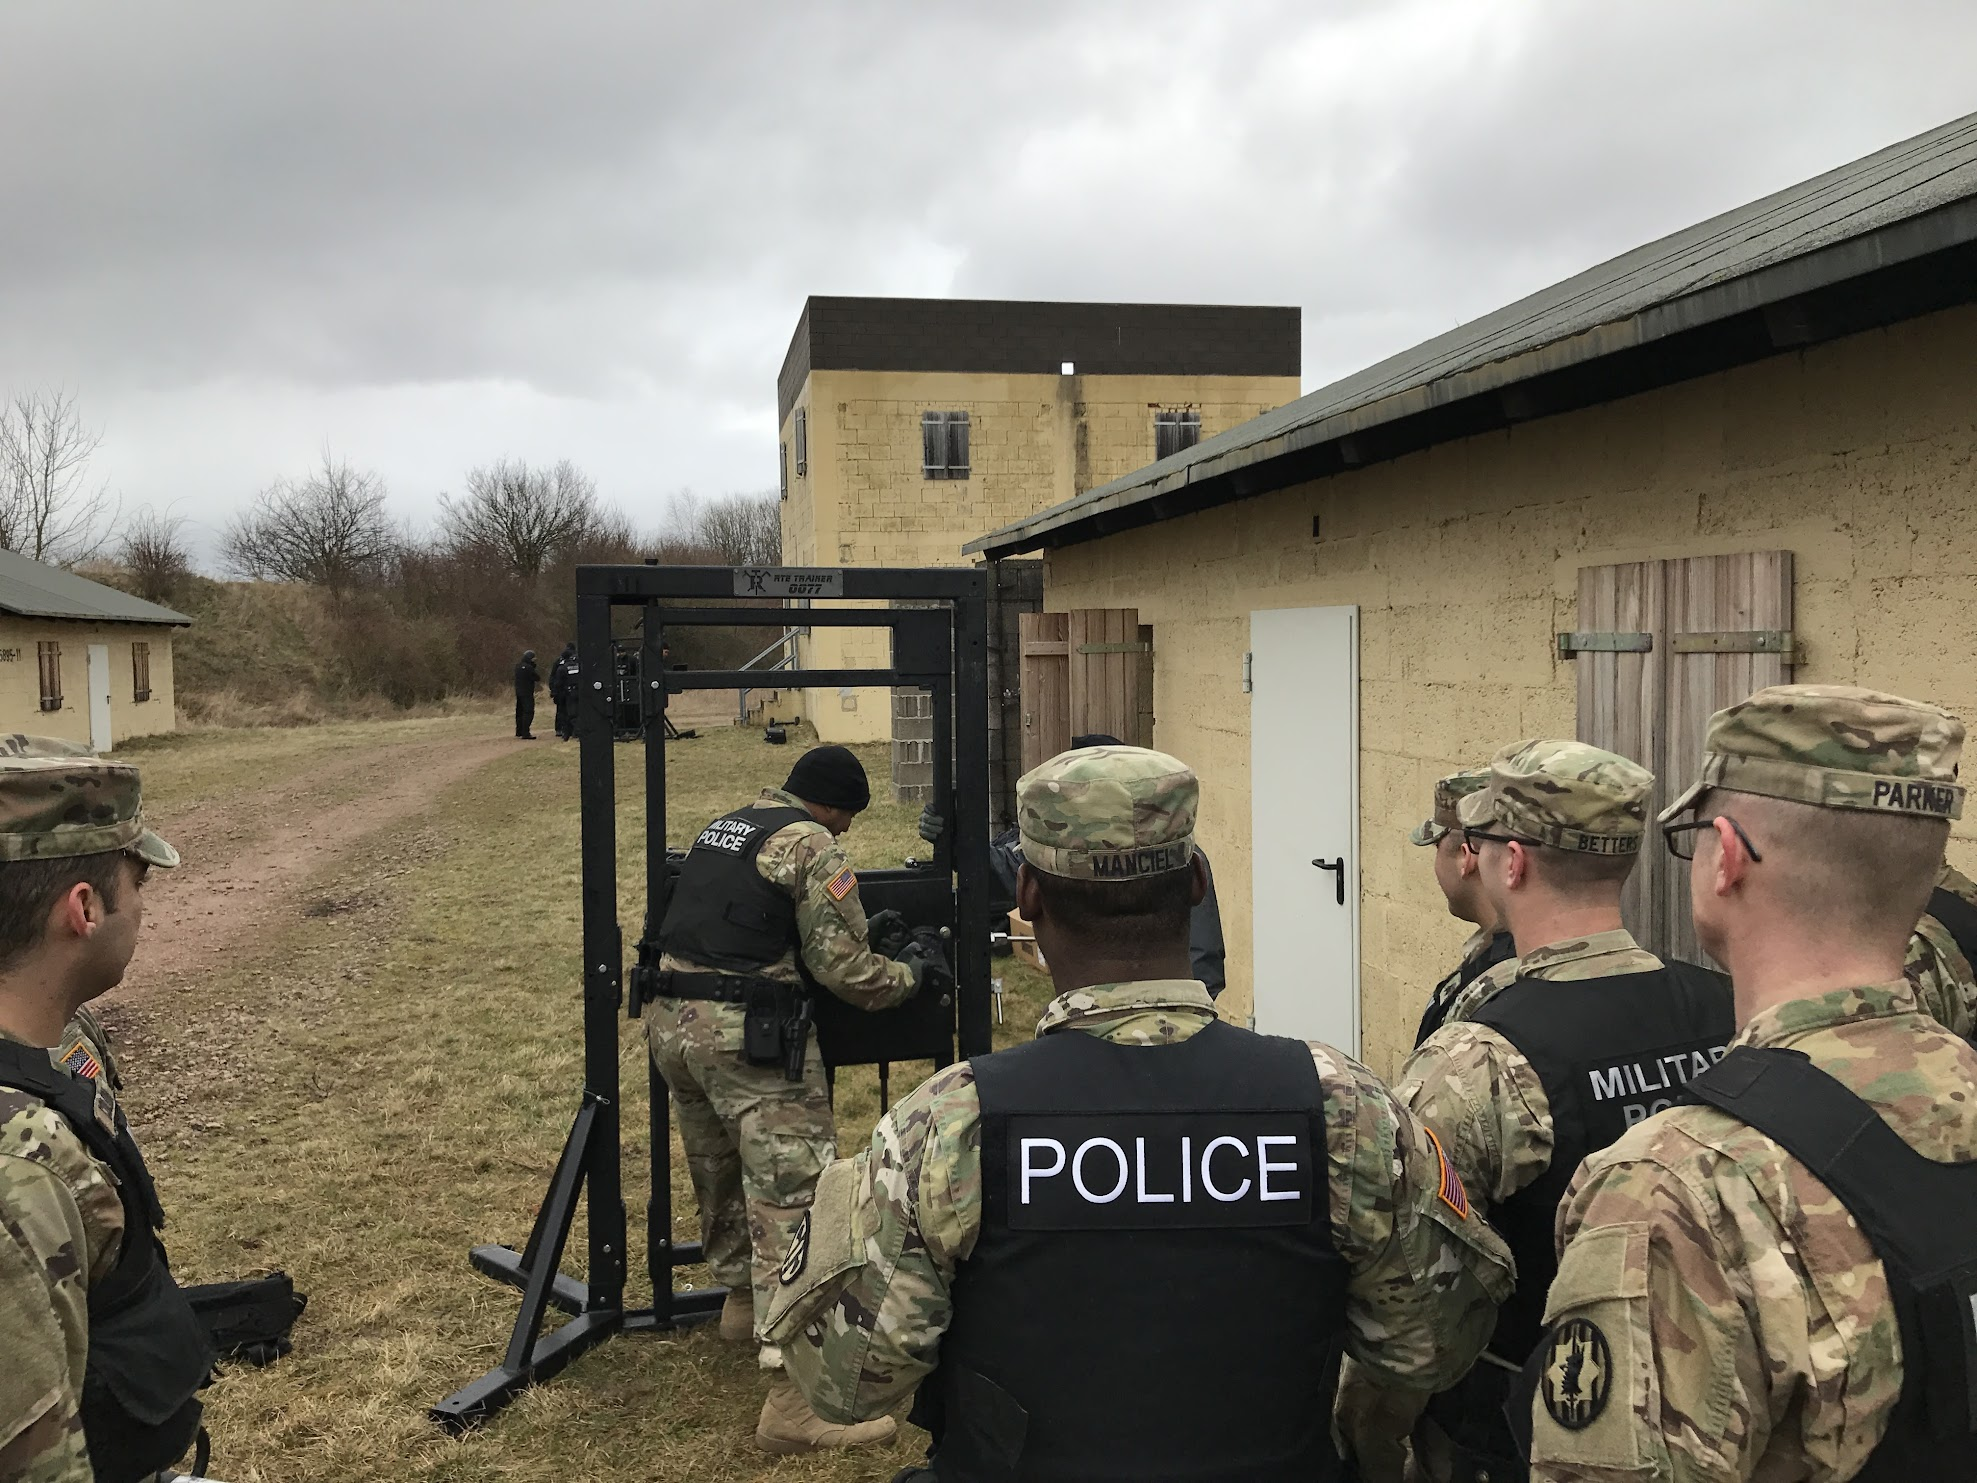 Andy Ruhland evaluates breaching technique conducted by one of the US Army Military Police Soldiers.